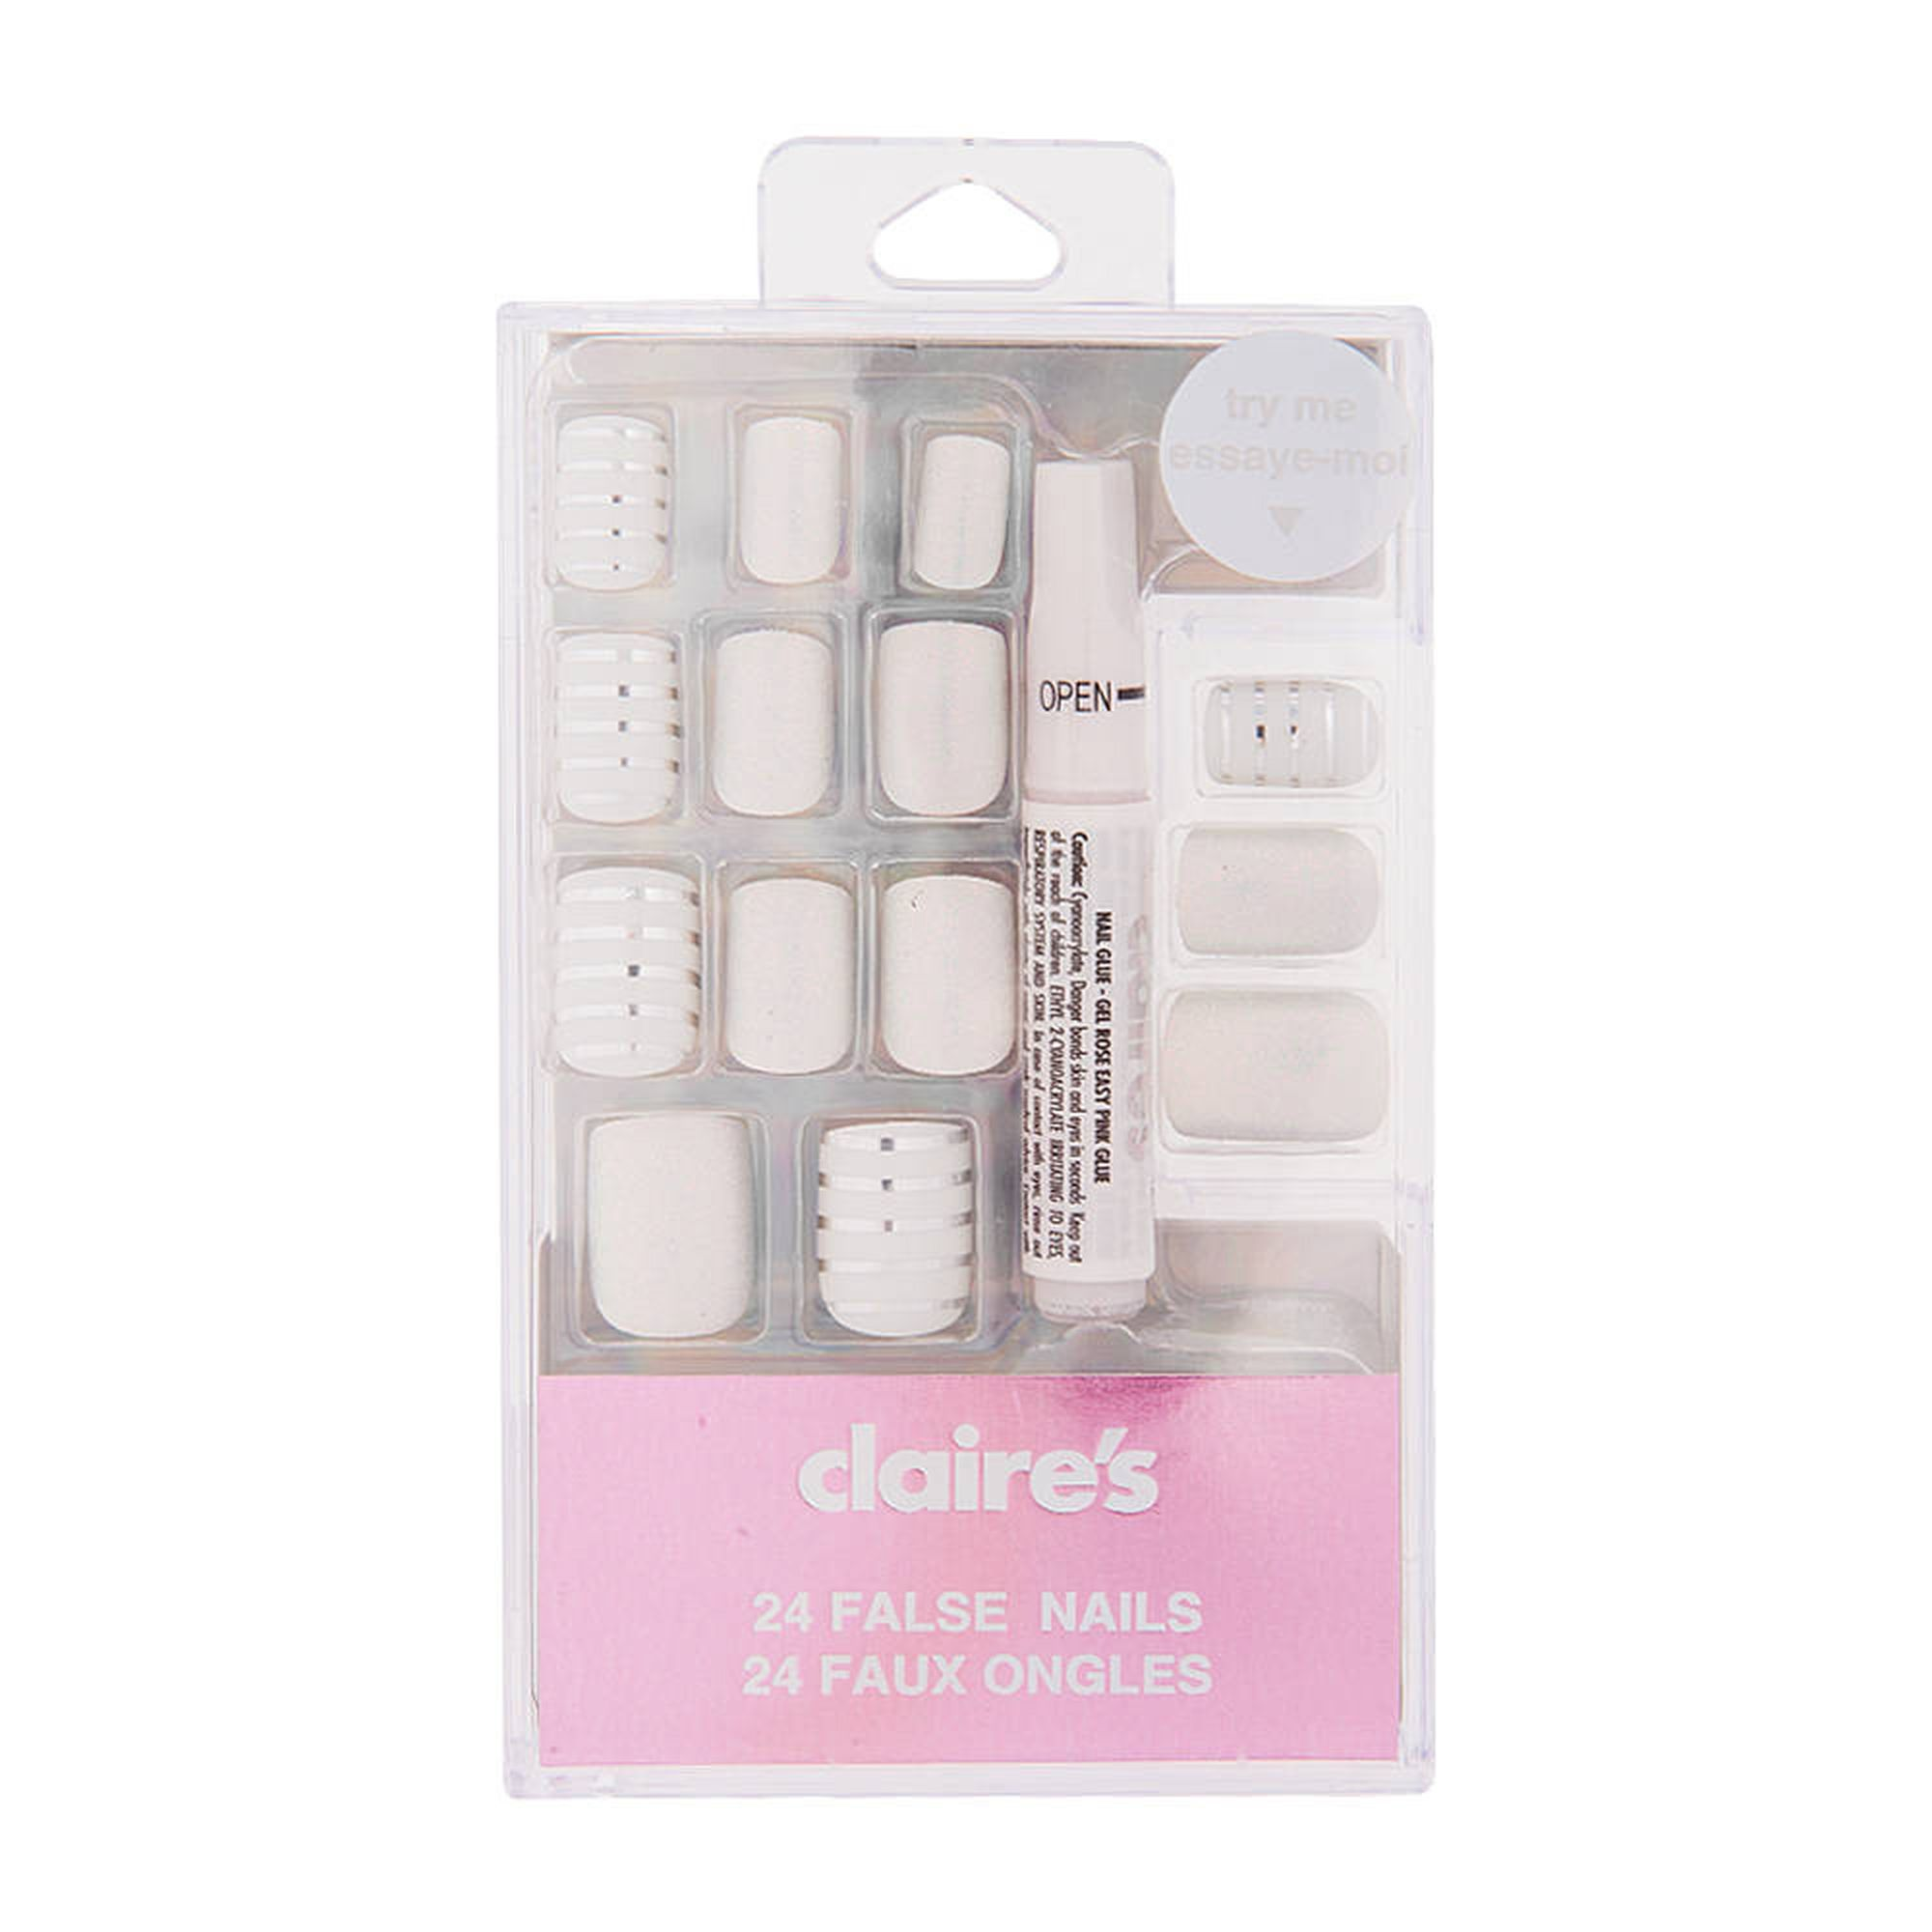 dae68ebae69 Claire's Glitter Striped Faux Nail Set - White, 24 Pack in 2019 ...